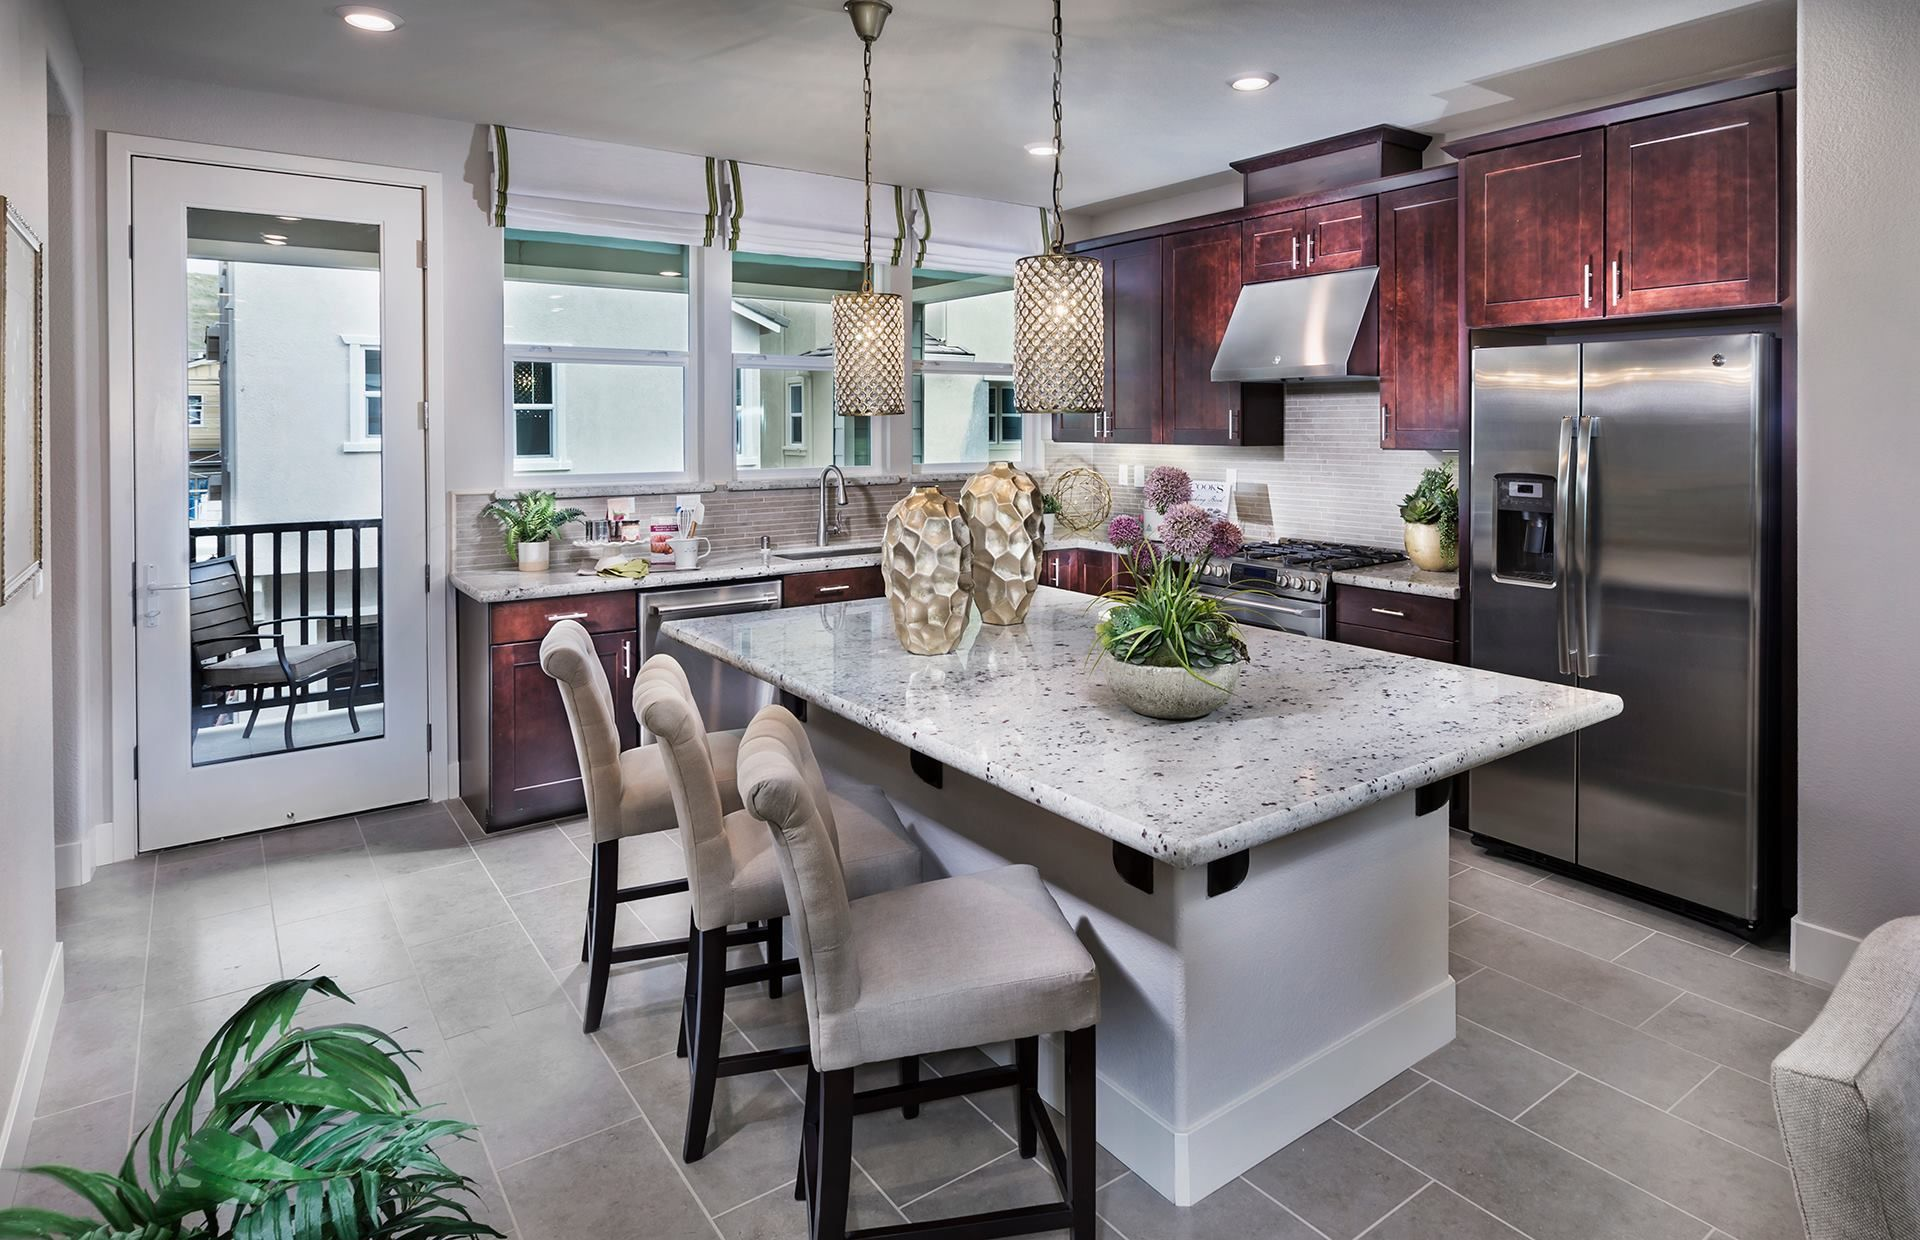 Use ONE word to describe this kitchen! New homes for